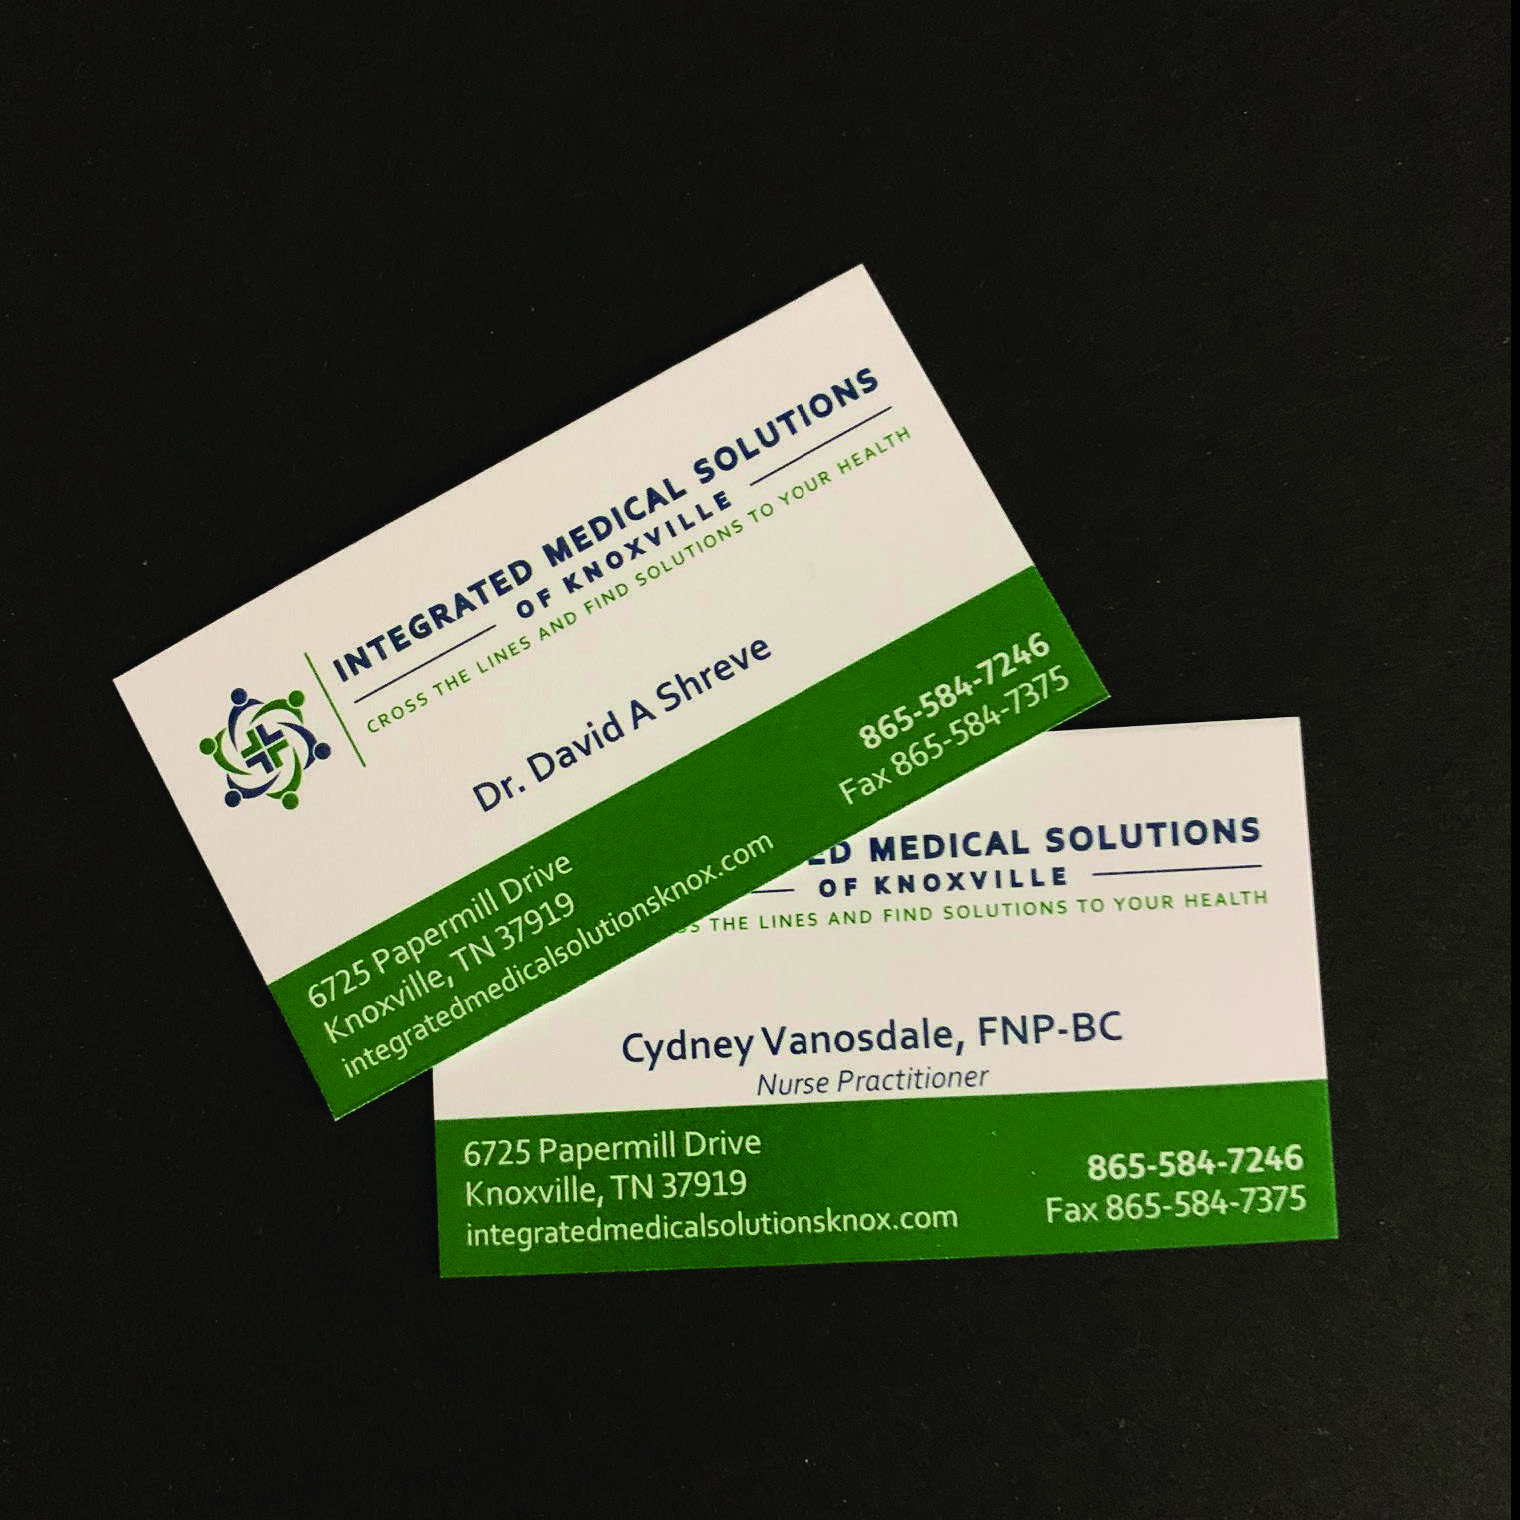 Business Cards 1 - Standard